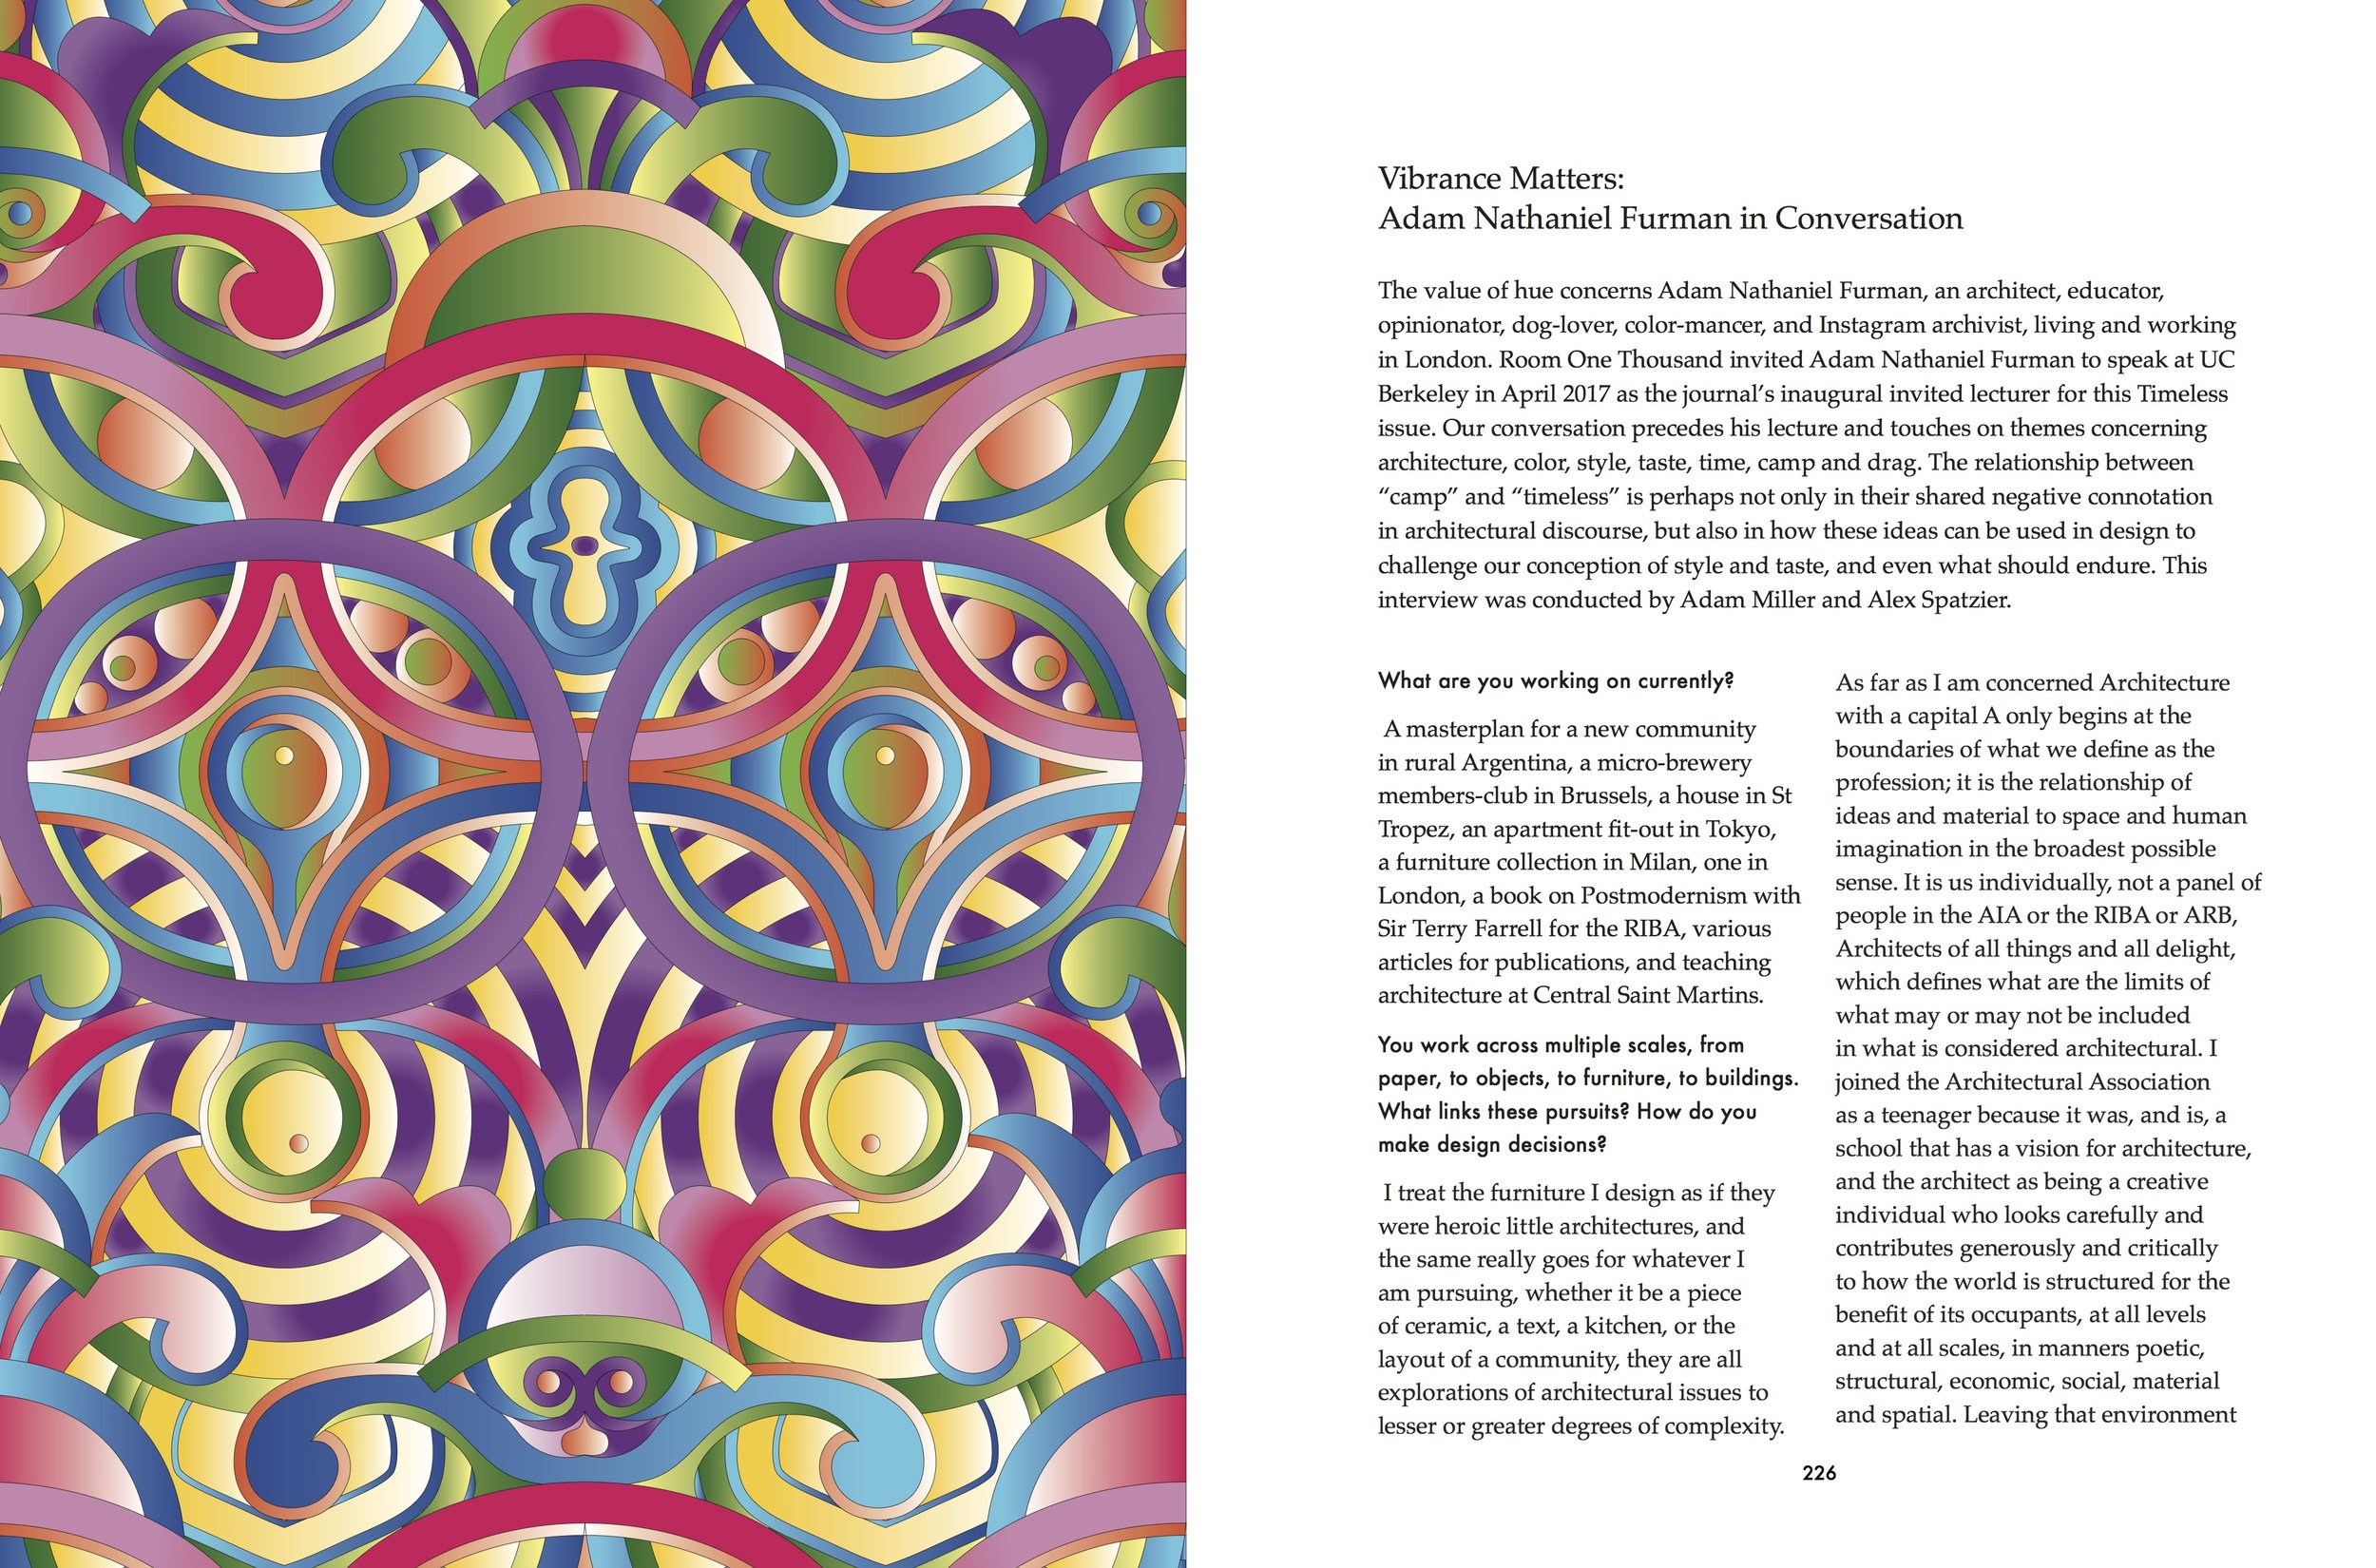 """""""Vibrance Matters: Adam Nathaniel Furman in Conversation"""" conducted by Adam Miller and Alex Spatzier."""